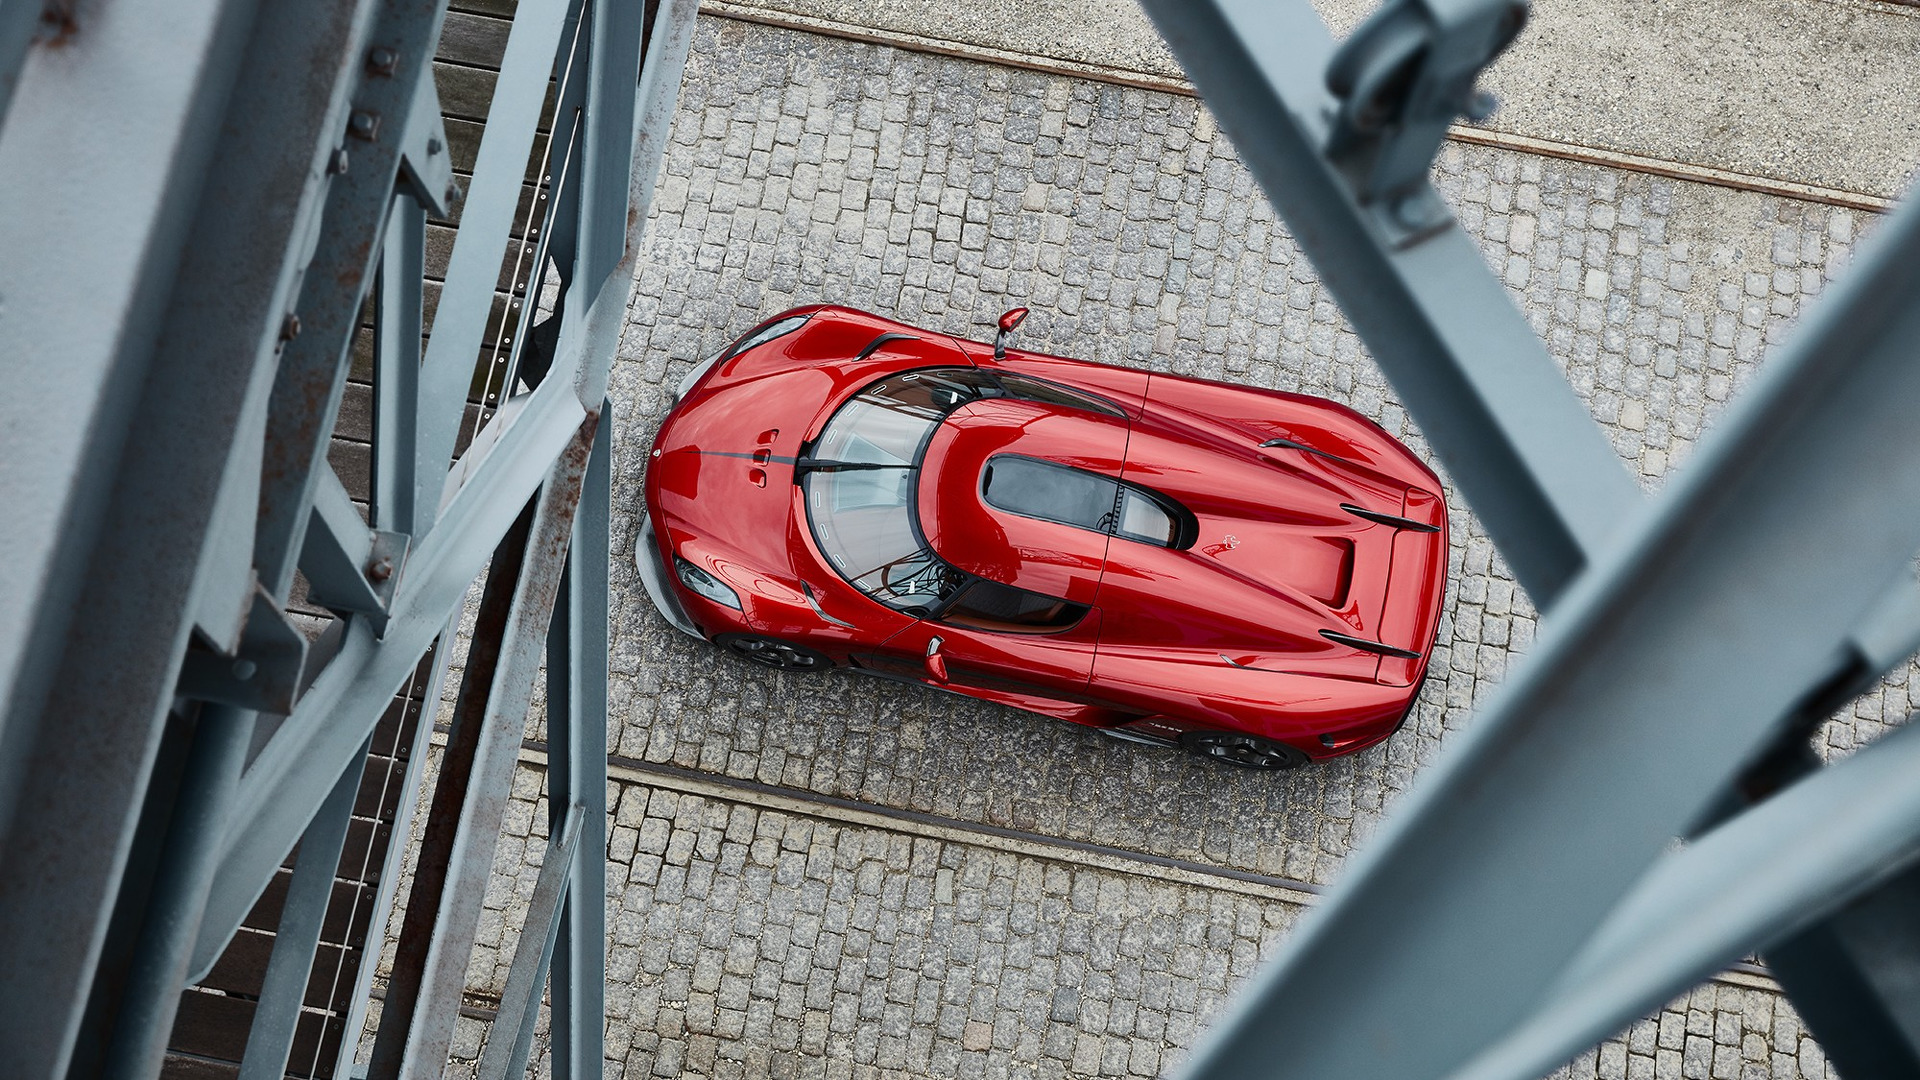 Australia S First Koenigsegg Regera To Arrive By Mid